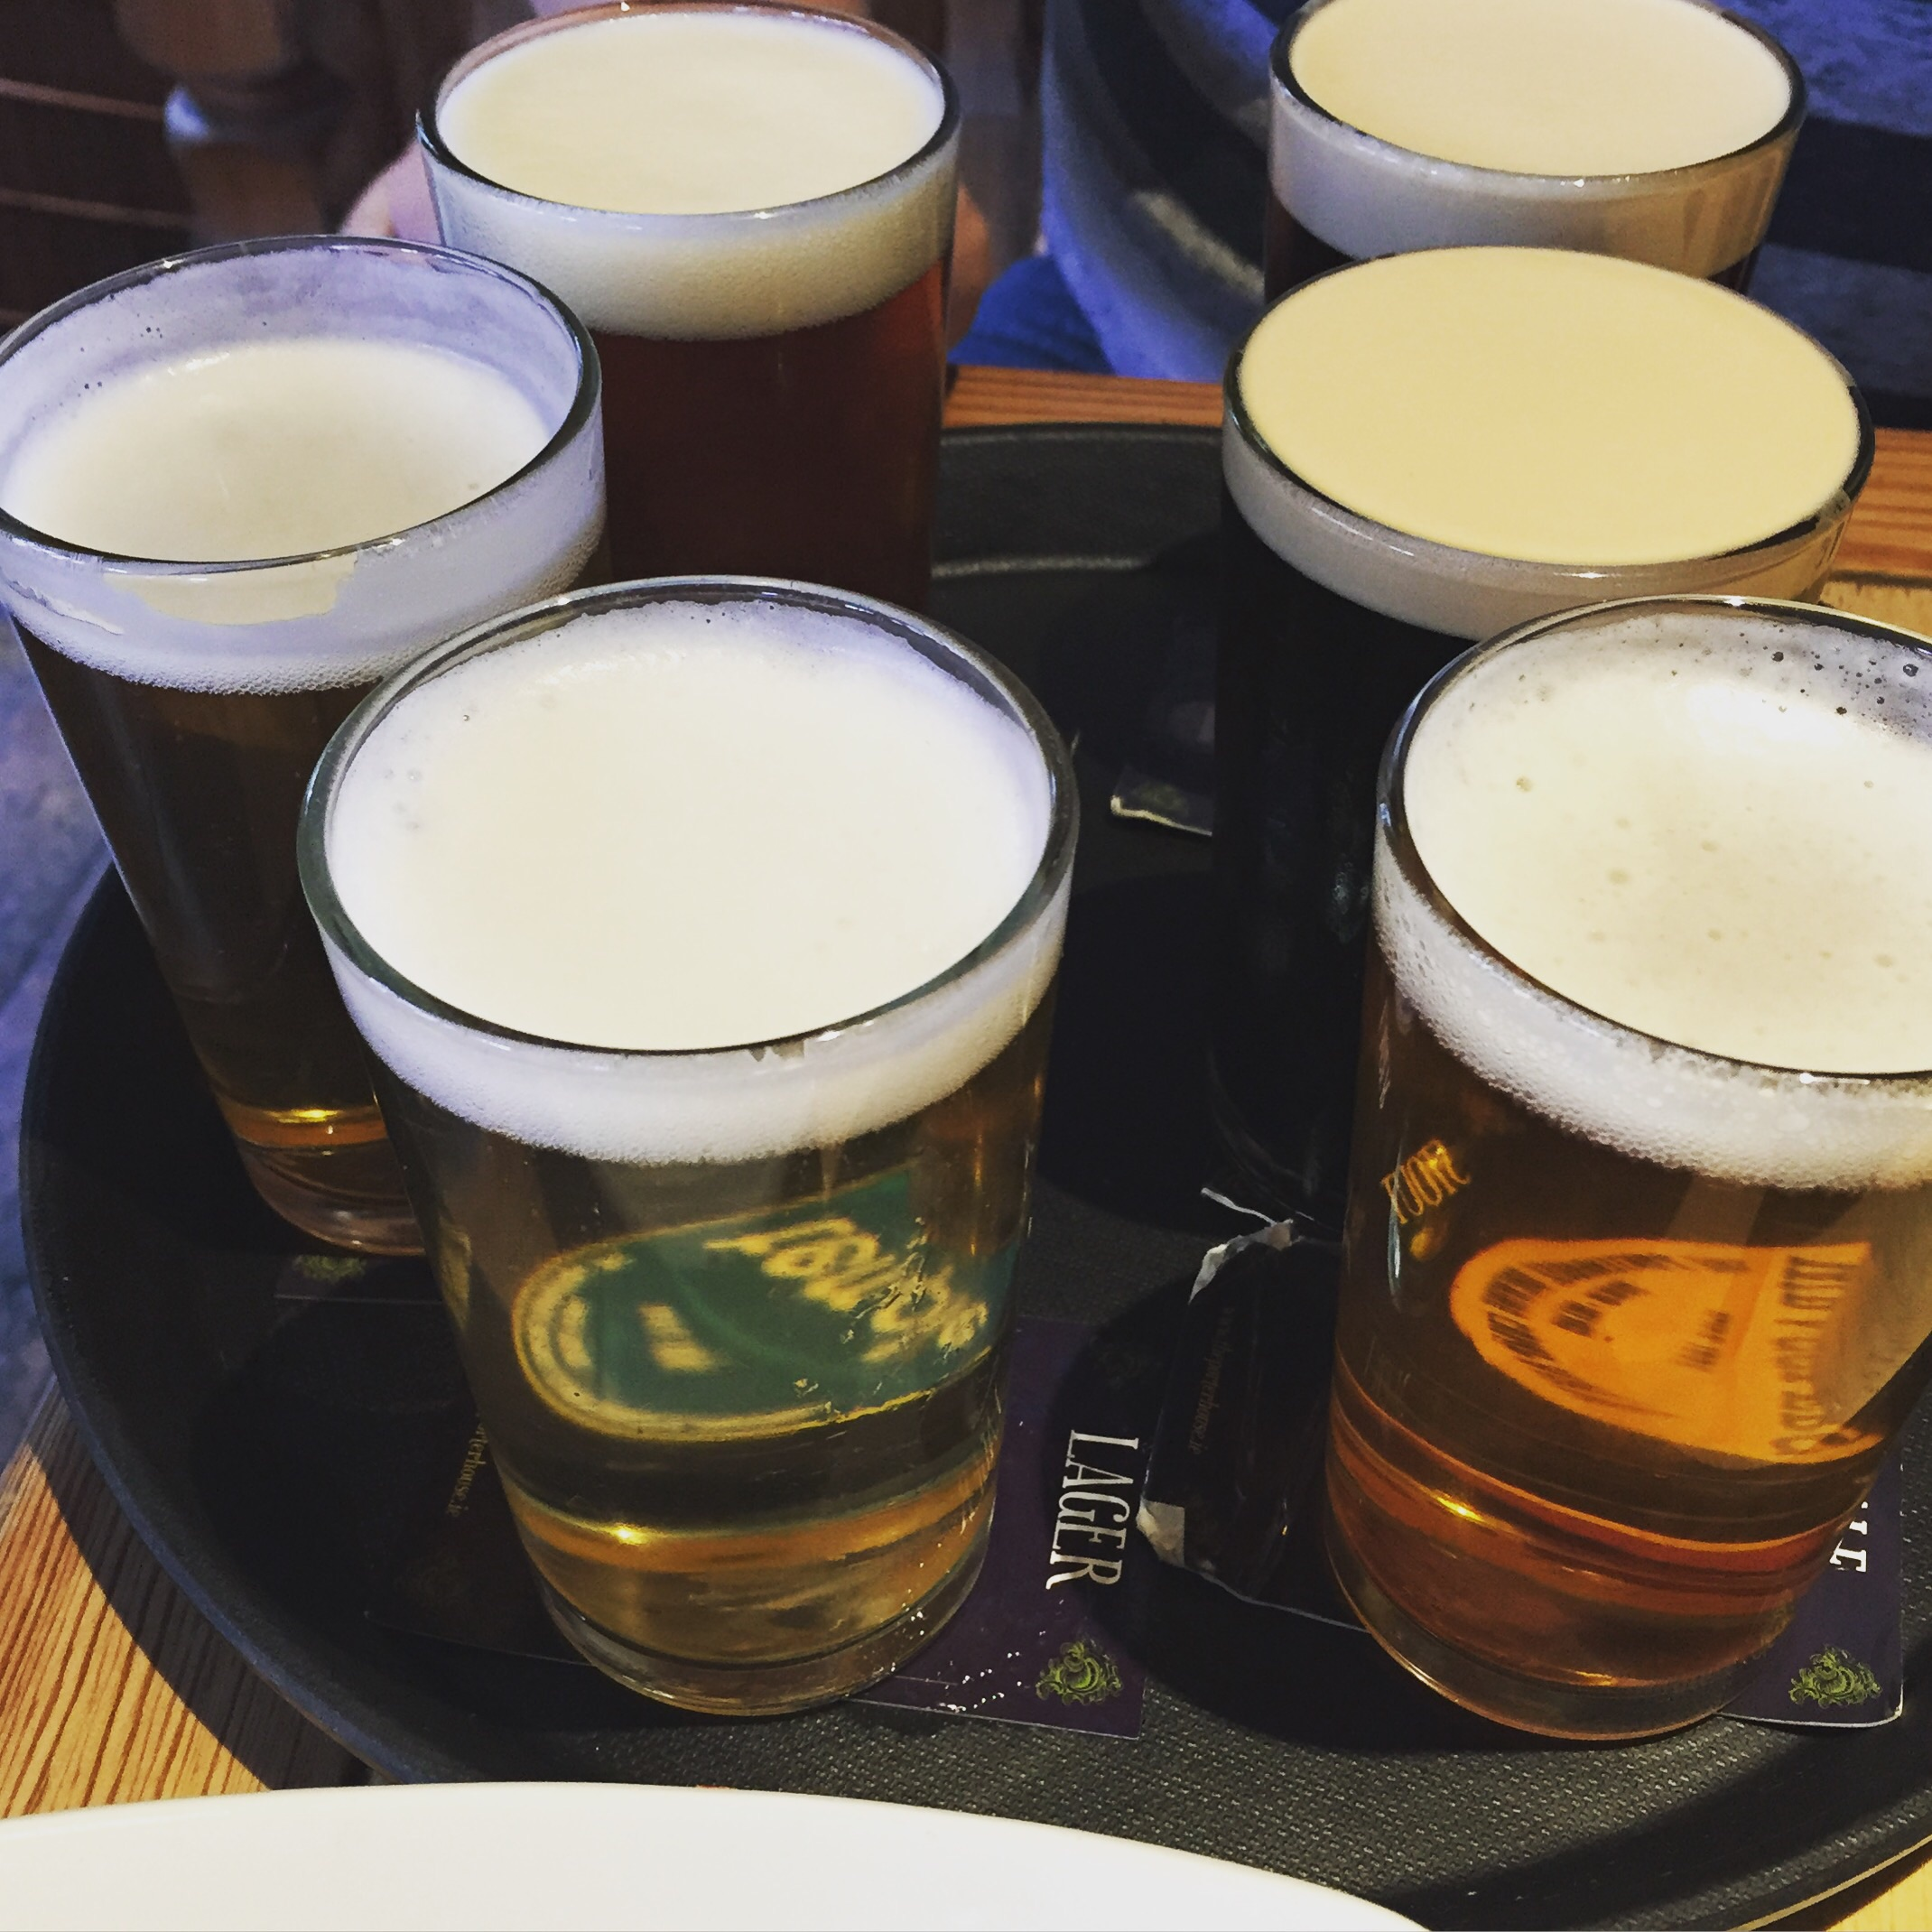 Sampler. Three stouts and three others, a lager, an IPA, and a blonde.